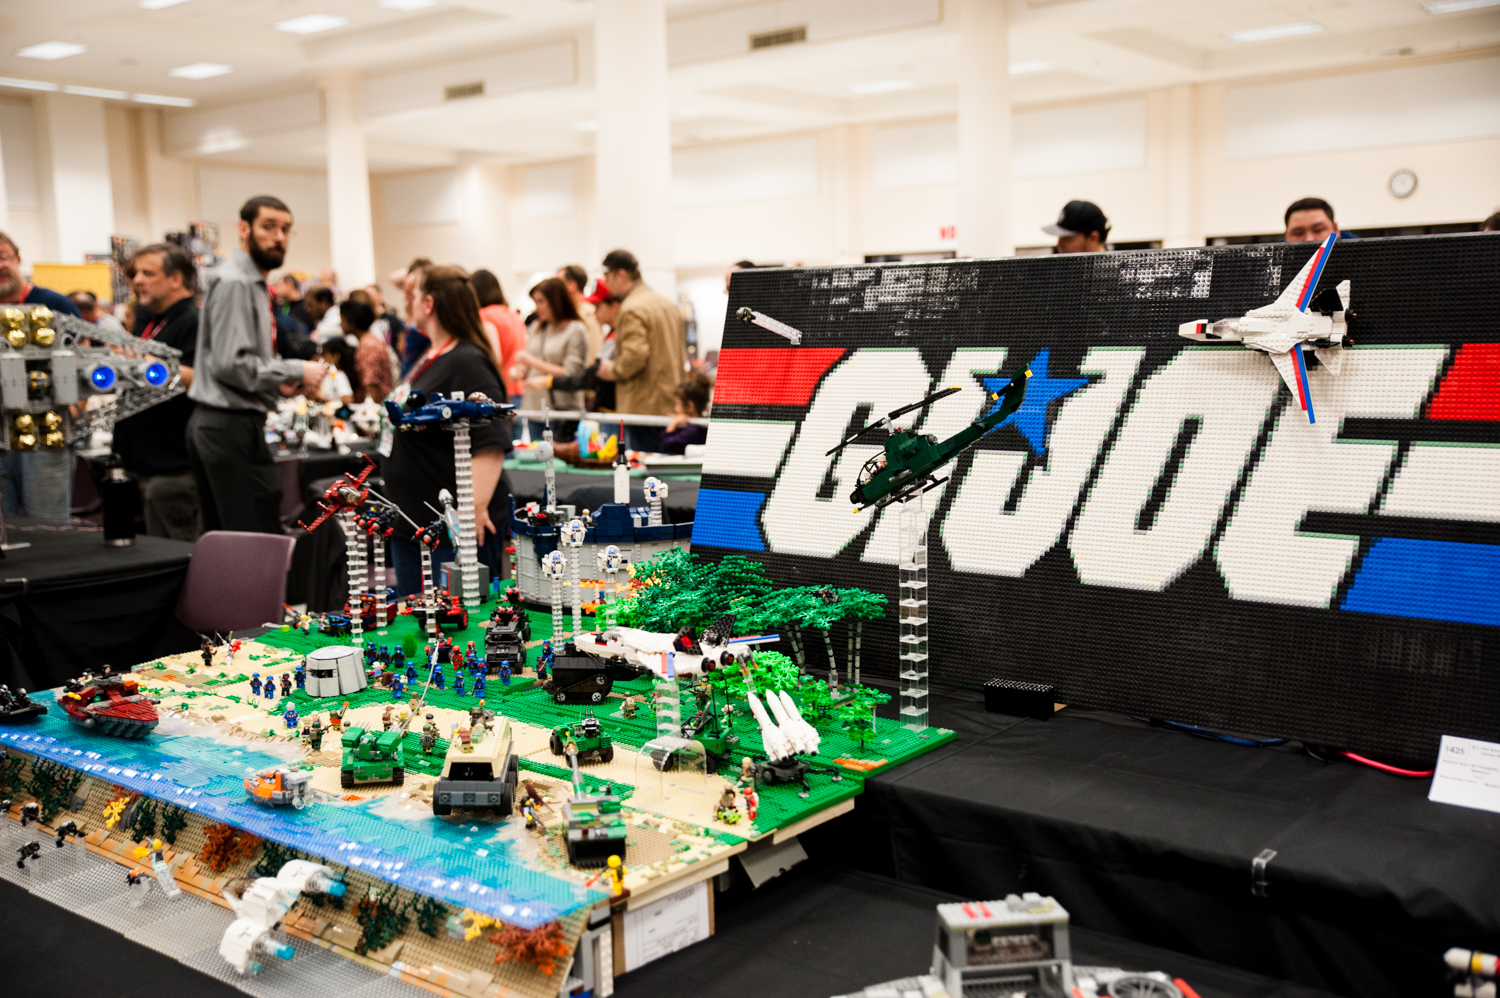 "Seattle Center Exhibition Hall is being taken over this weekend (Oct. 5-6) by LEGOS! Adult LEGO hobbyists from around the nation and world will be showing off thousands of models, and you can build your own masterpiece too at the Building Zone. Go on, Just Build It!{&nbsp;}<a  href=""https://www.eventbrite.com/e/brickcon-exhibition-october-5-october-6-2019-tickets-64141820913?aff=bcmain"" target=""_blank"" title=""https://www.eventbrite.com/e/brickcon-exhibition-october-5-october-6-2019-tickets-64141820913?aff=bcmain"">Tickets start at $11</a>{&nbsp;}and are still on sale now. (Image: Elizabeth Crook / Seattle Refined){&nbsp;}"